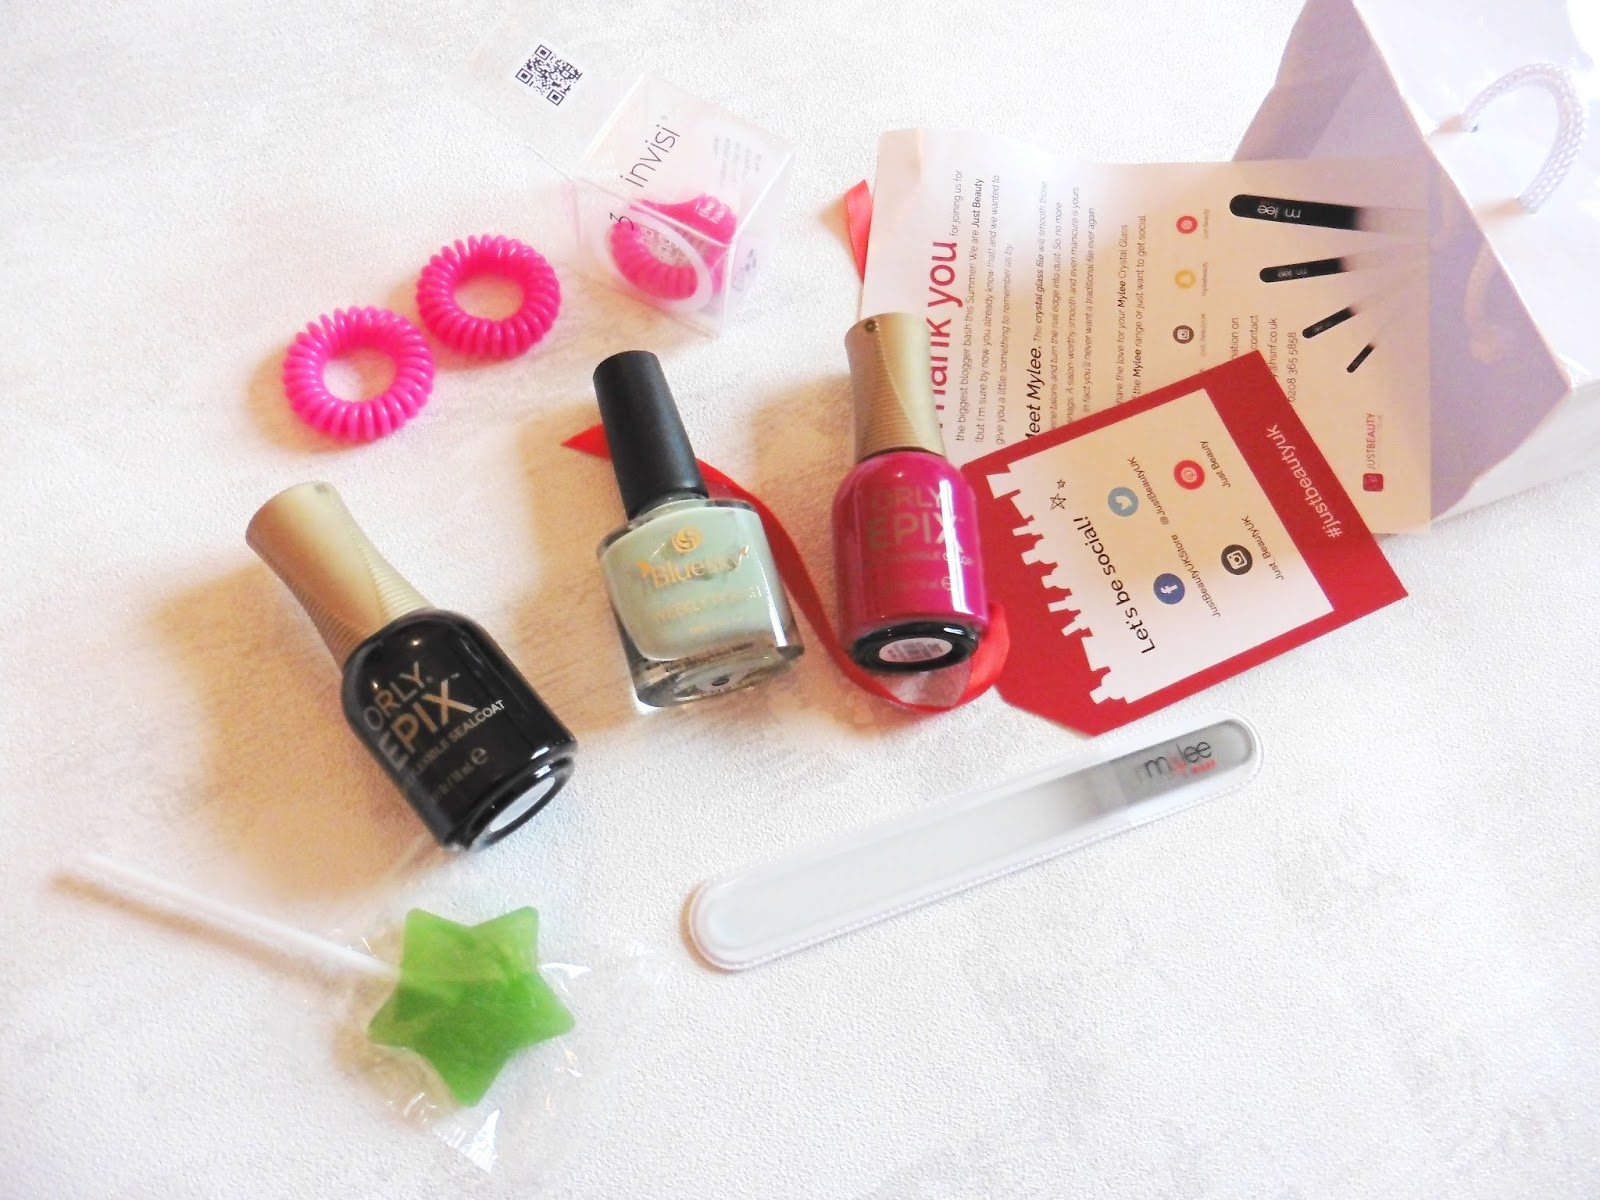 lebellelavie - A little goodie bag treat from Just Beauty